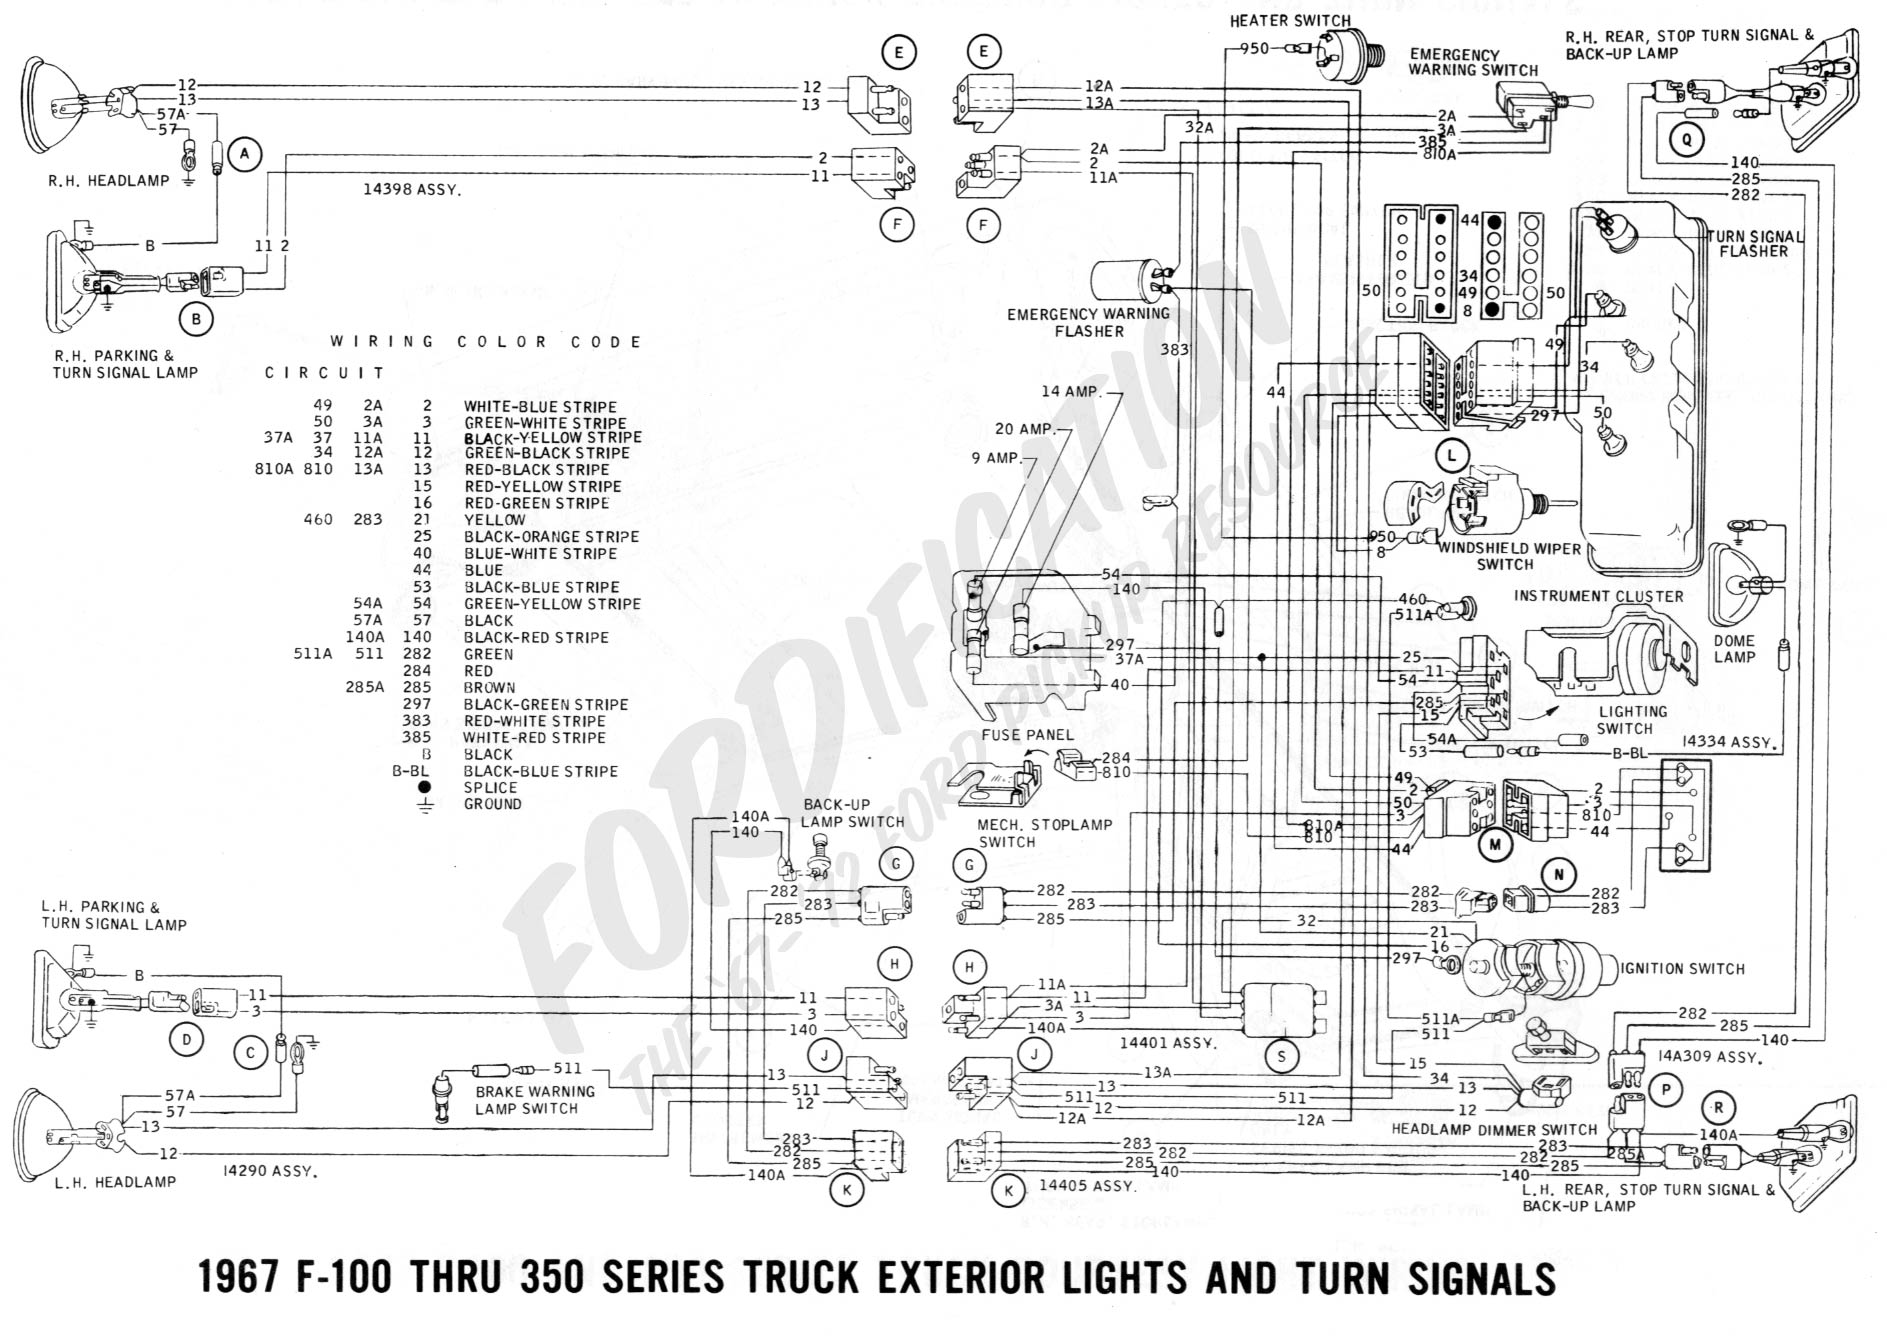 1968 ford f 250 wiring diagram wiring diagram expertswiring diagram for 1968 ford f100 pick up wiring diagram experts 1968 ford f 250 wiring diagram